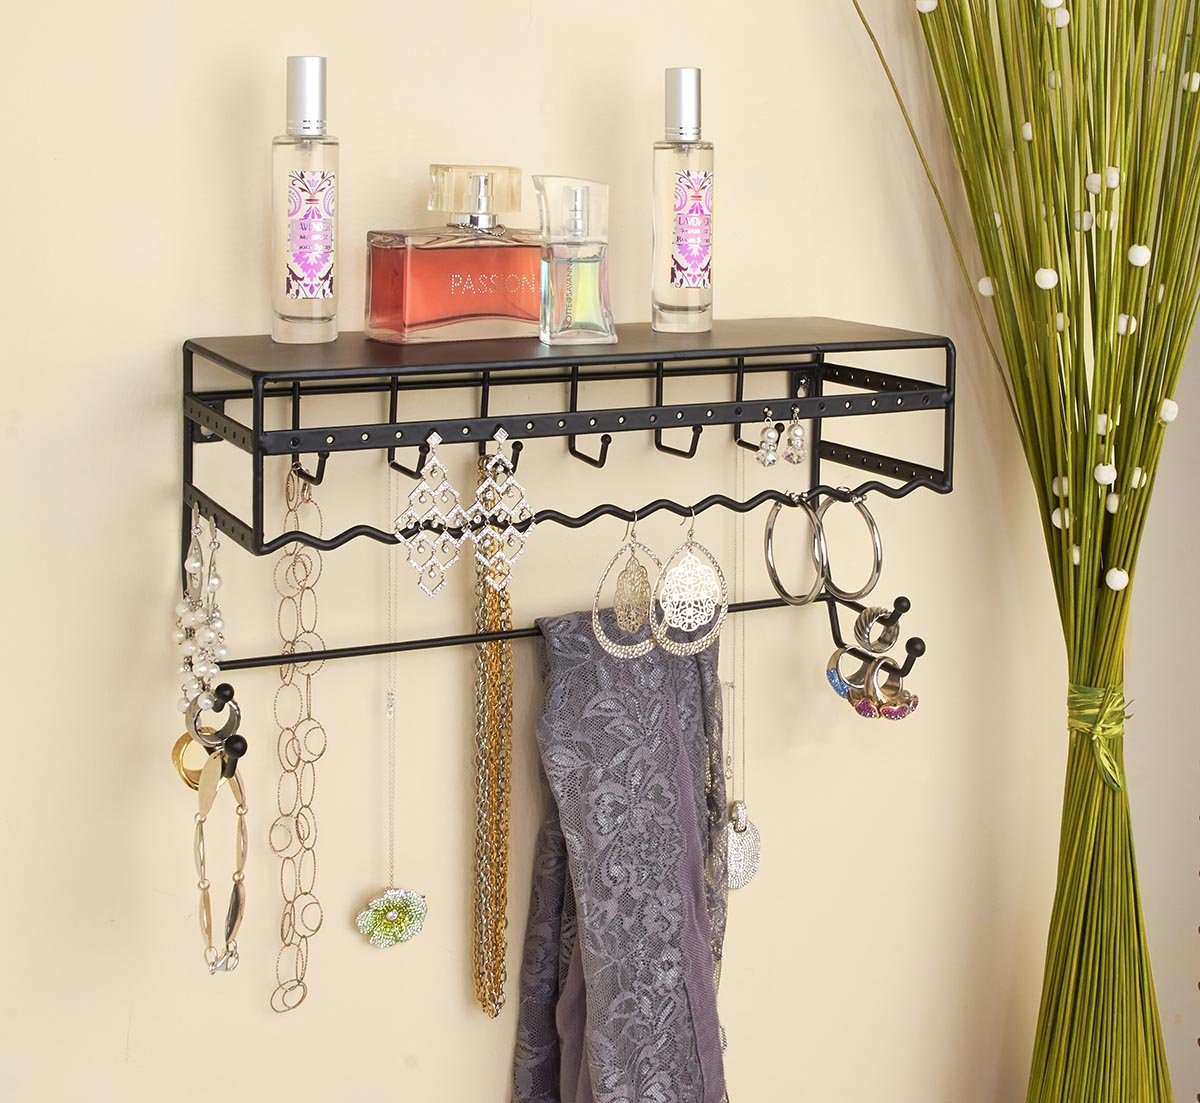 Black 13.5'' Wall Mount Jewelry & Accessory Storage Rack Organizer Shelf for Earrings, Bracelets, Necklaces, & Hair Accessories